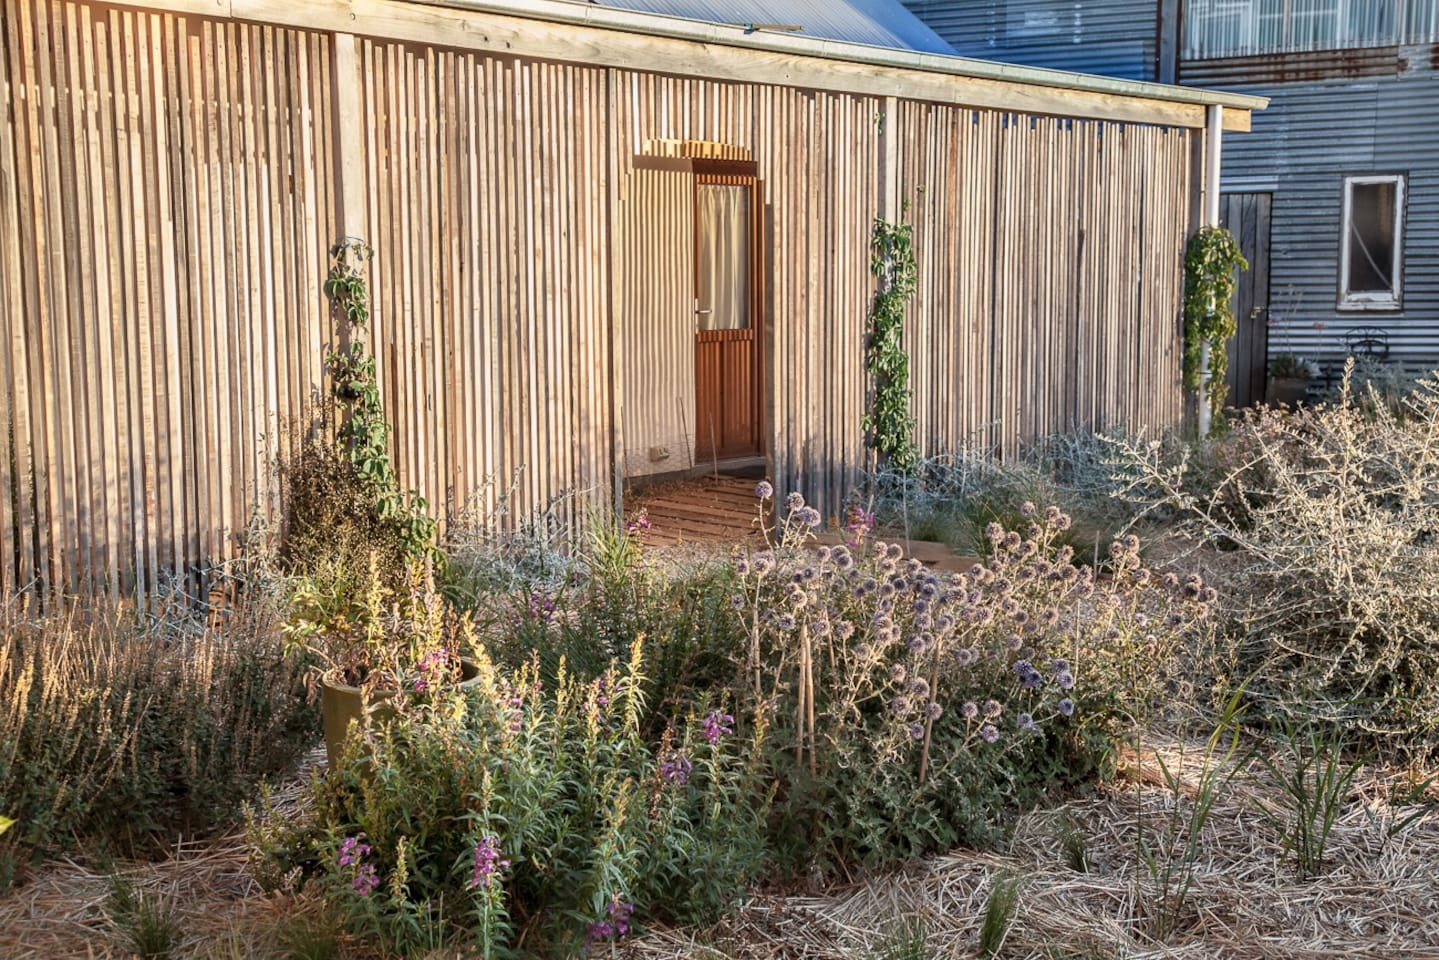 This is the Orto straw cottage, protected by a wooden facade. As the sun sets, the light filters through to create a beautifully lit walkway.